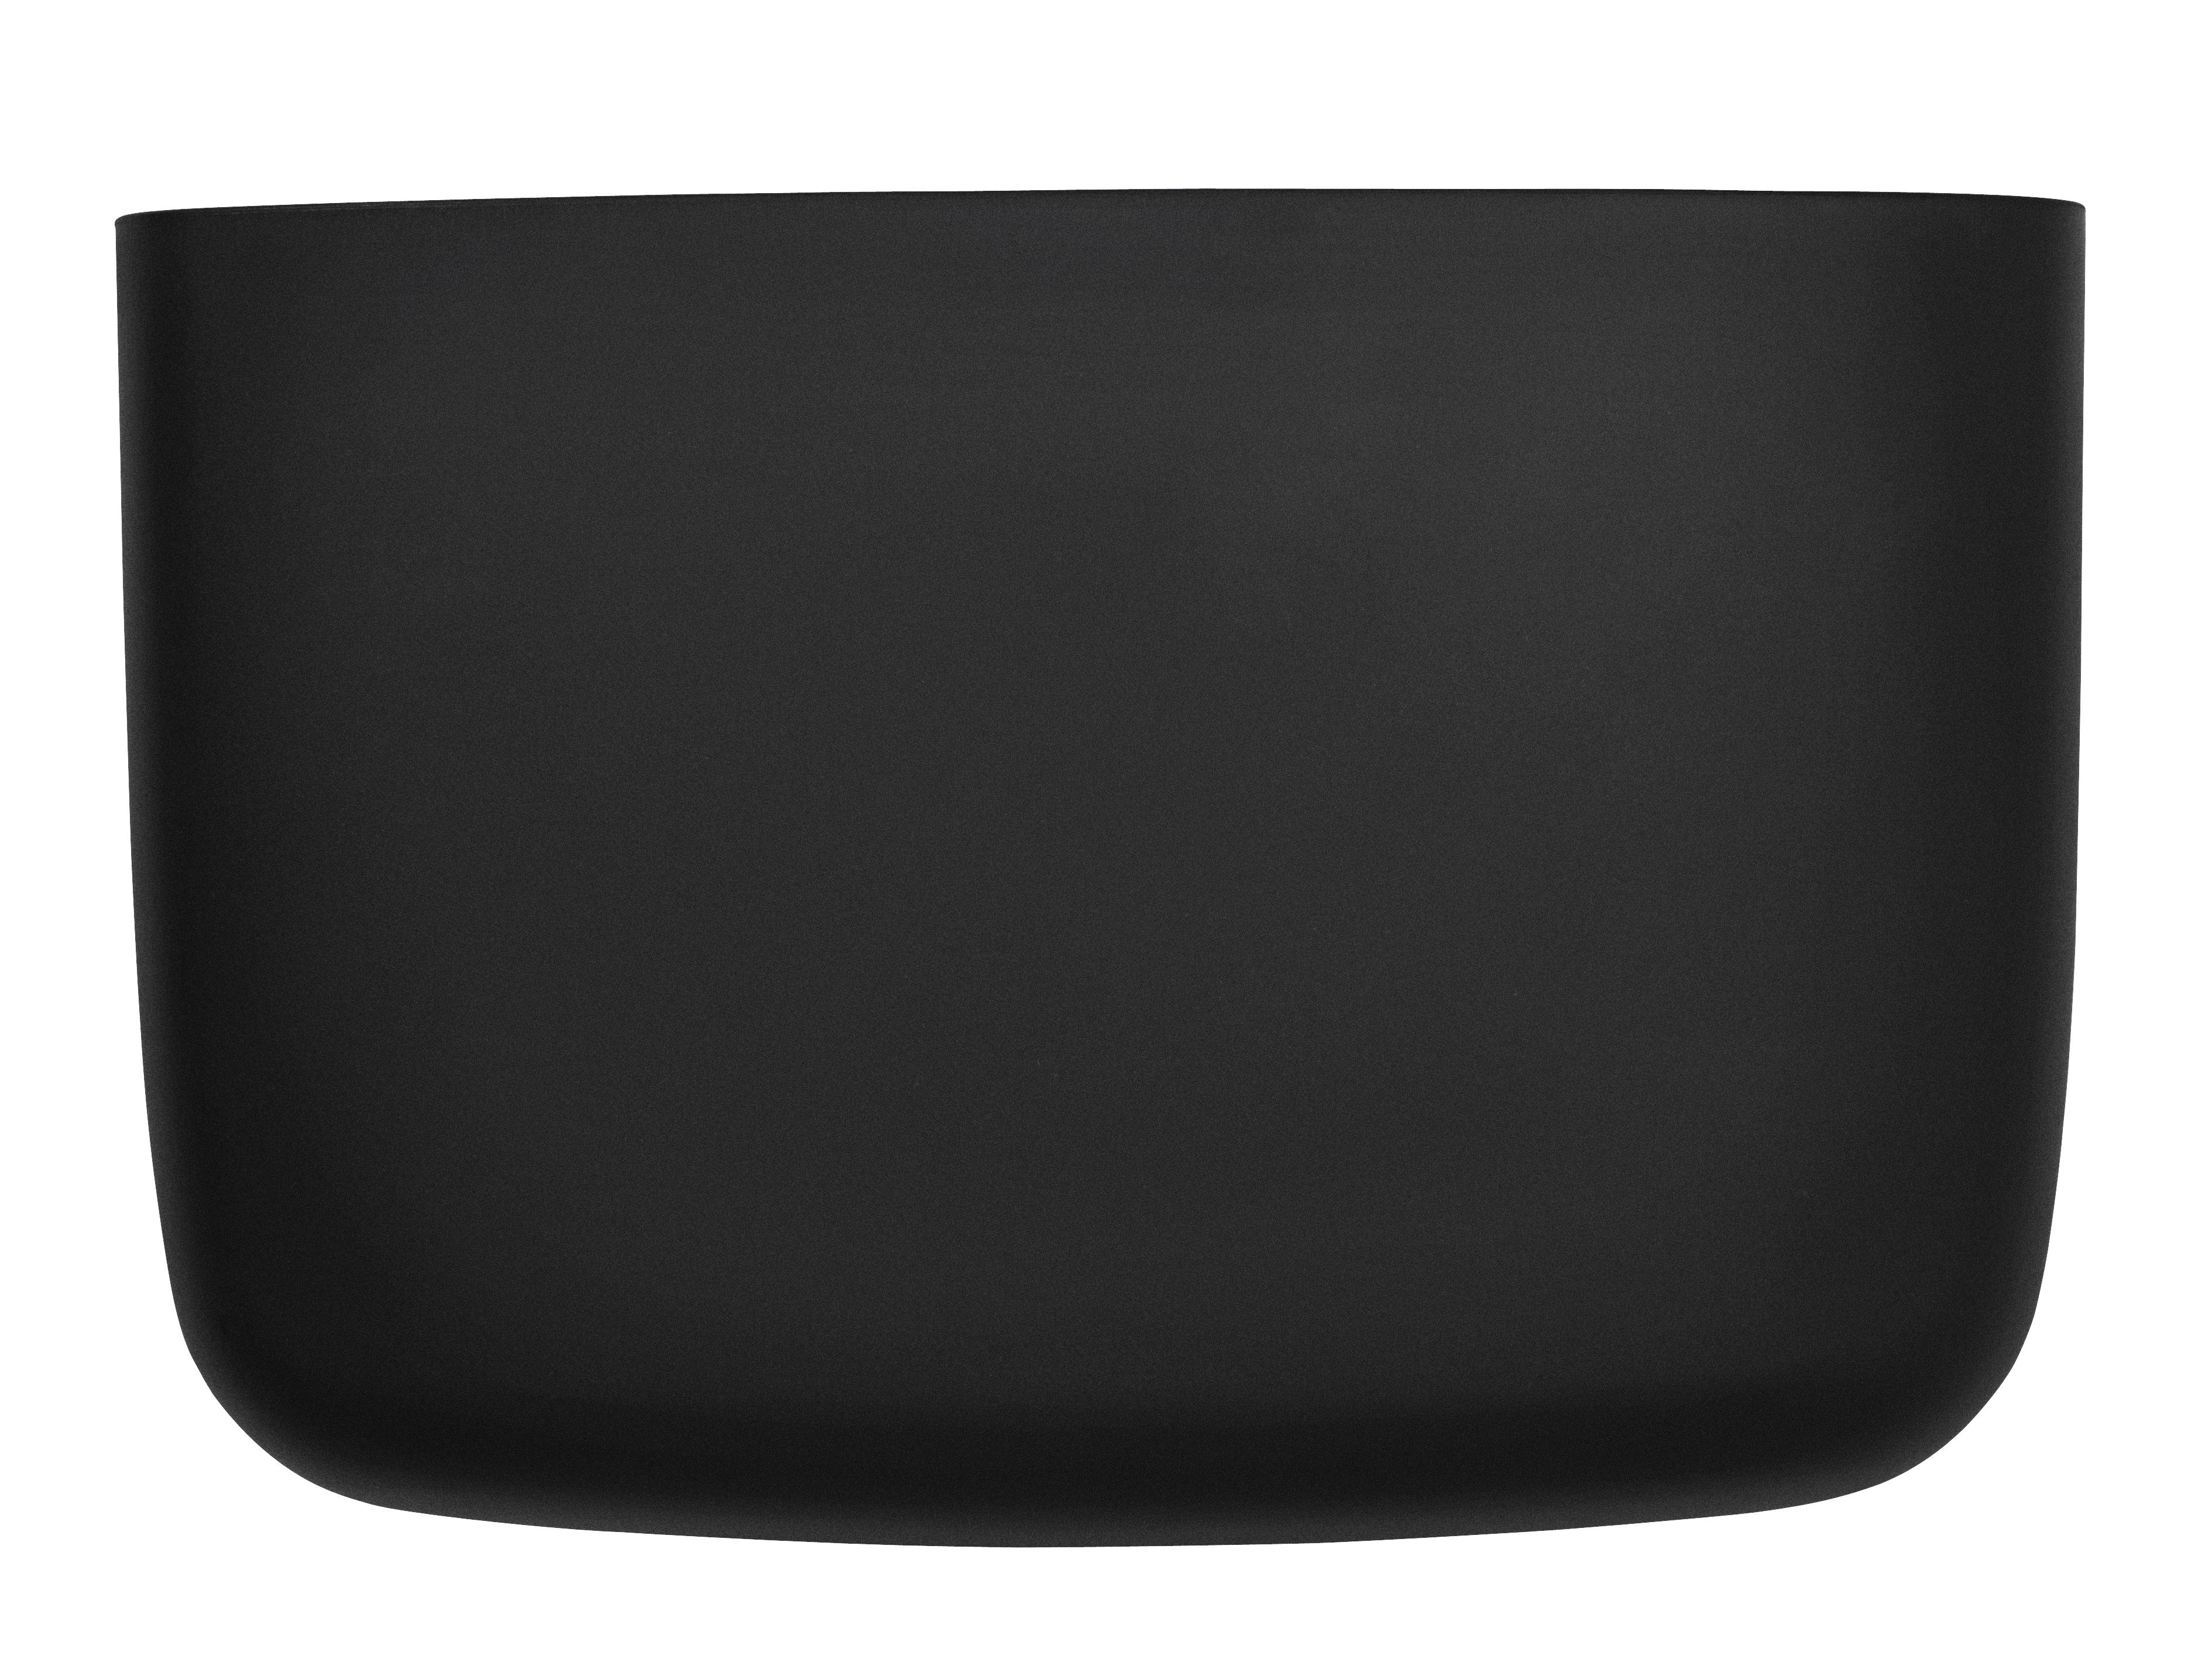 Decoration - Children's Home Accessories - Pocket 4 Wall storage by Normann Copenhagen - Black - Polypropylene